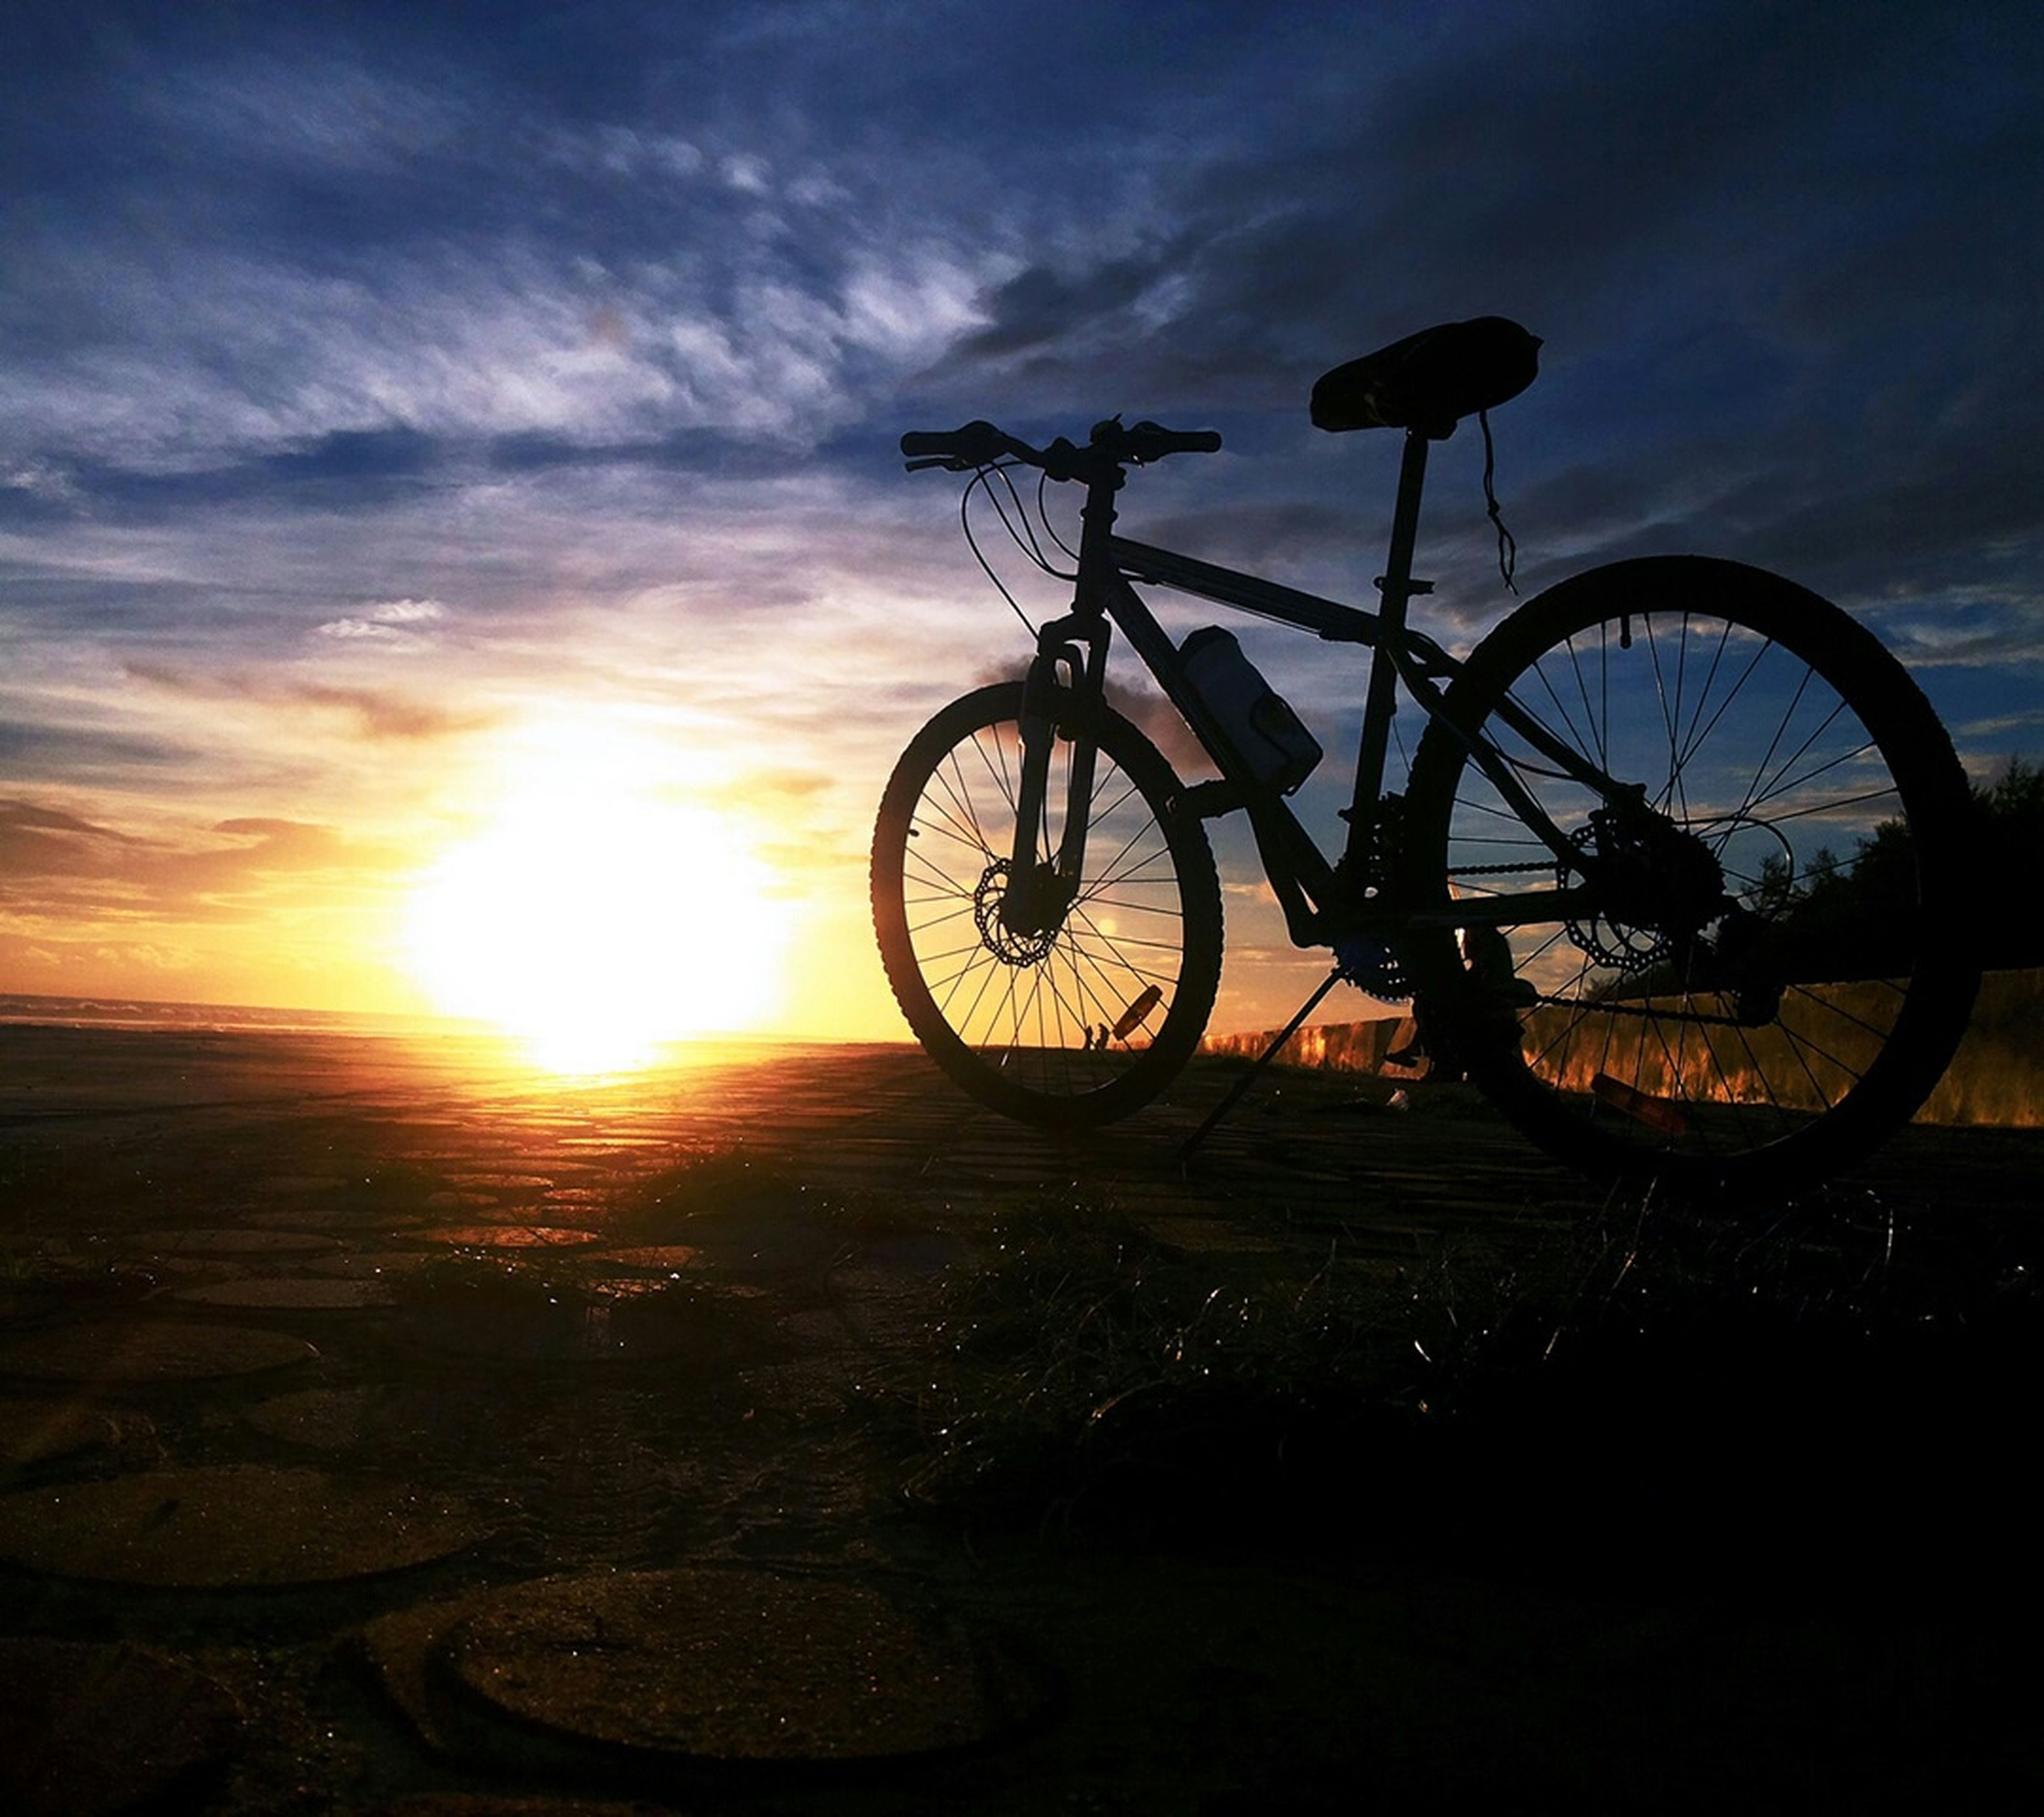 bicycle, sunset, transportation, land vehicle, sky, silhouette, sun, mode of transport, stationary, cloud - sky, parking, sunlight, orange color, parked, nature, tranquility, scenics, beauty in nature, wheel, tranquil scene